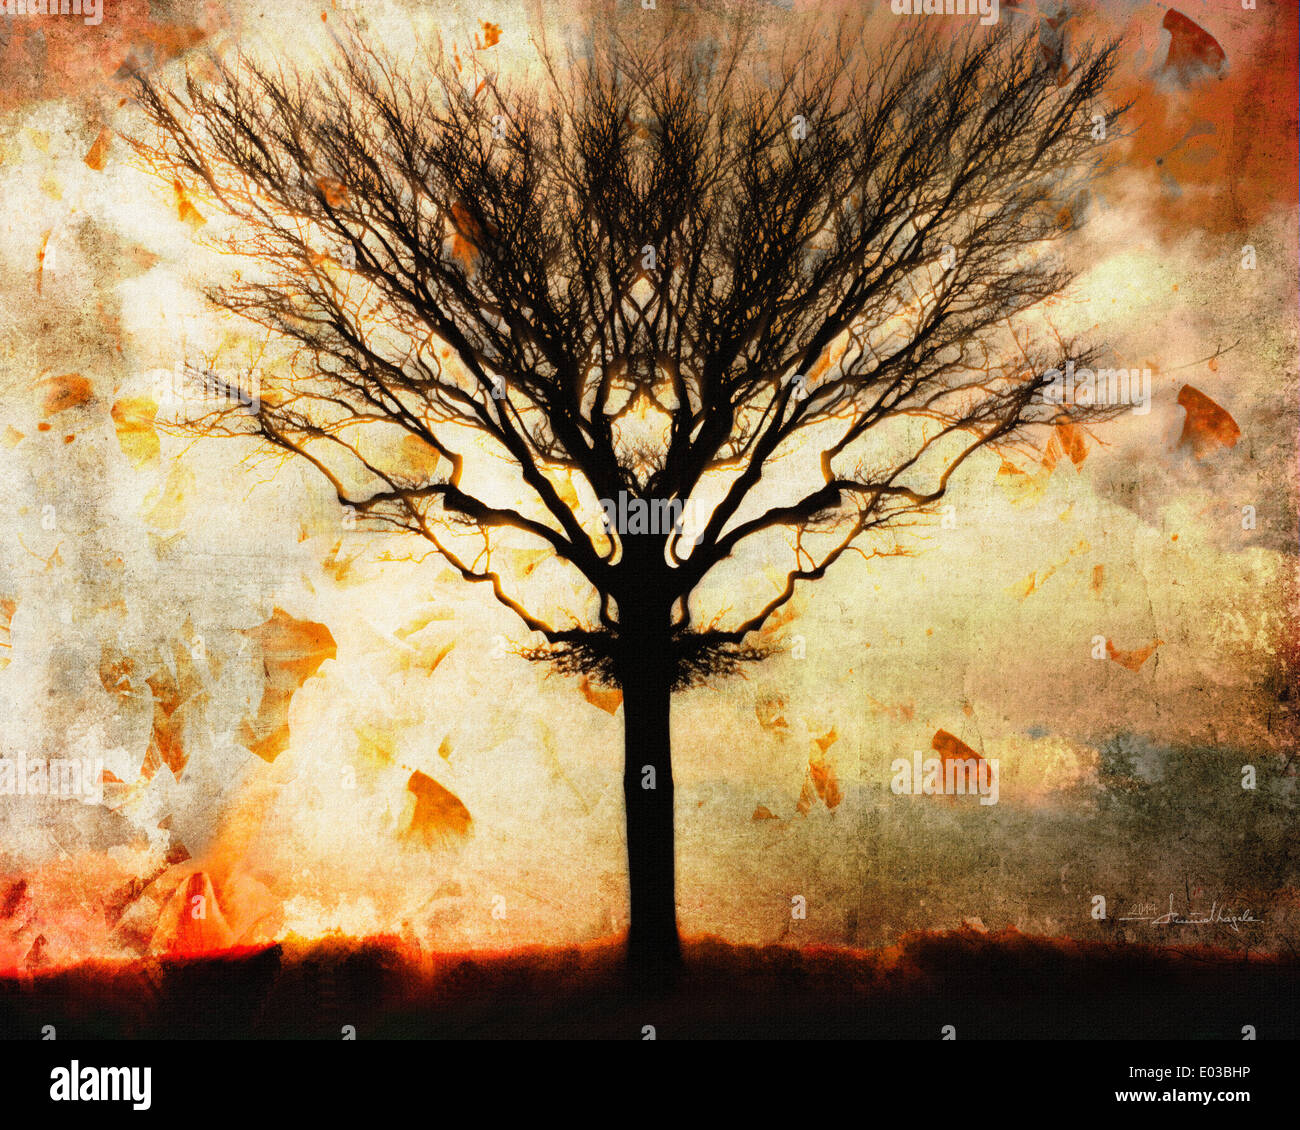 FINE ART: Autumn Winds Stock Photo